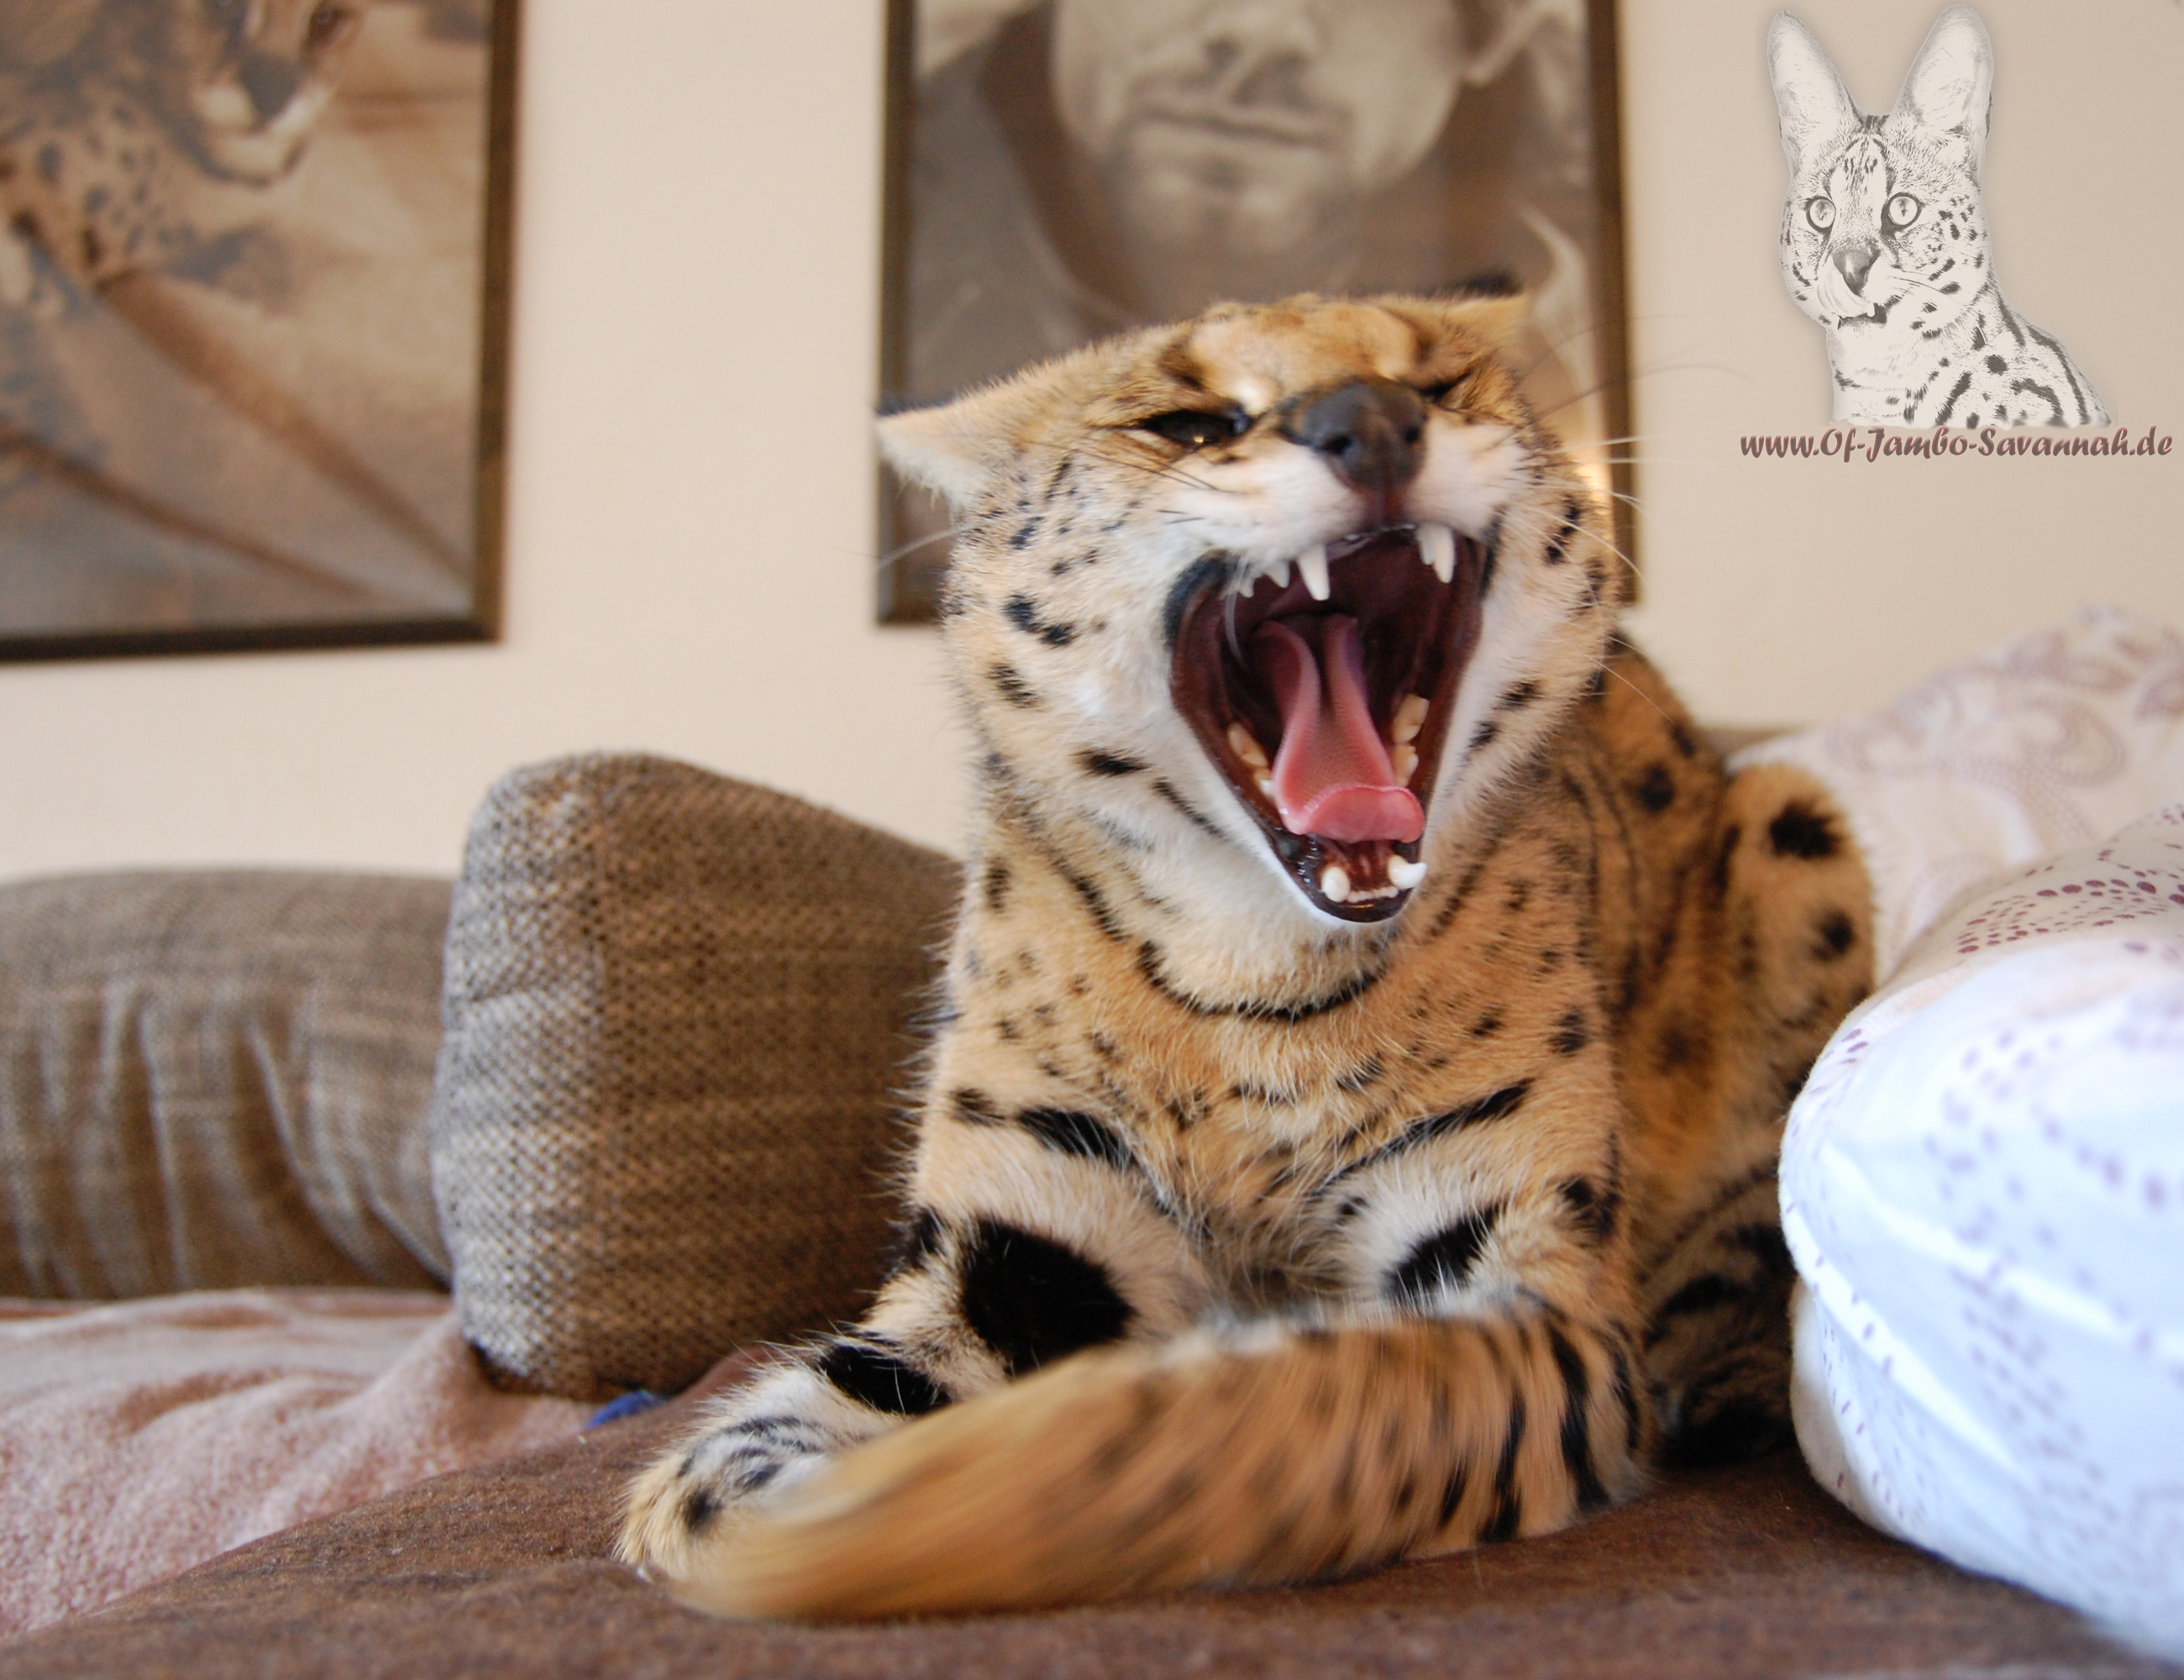 Savannah Cat Wildlife For The Living Room German Savannah Breed